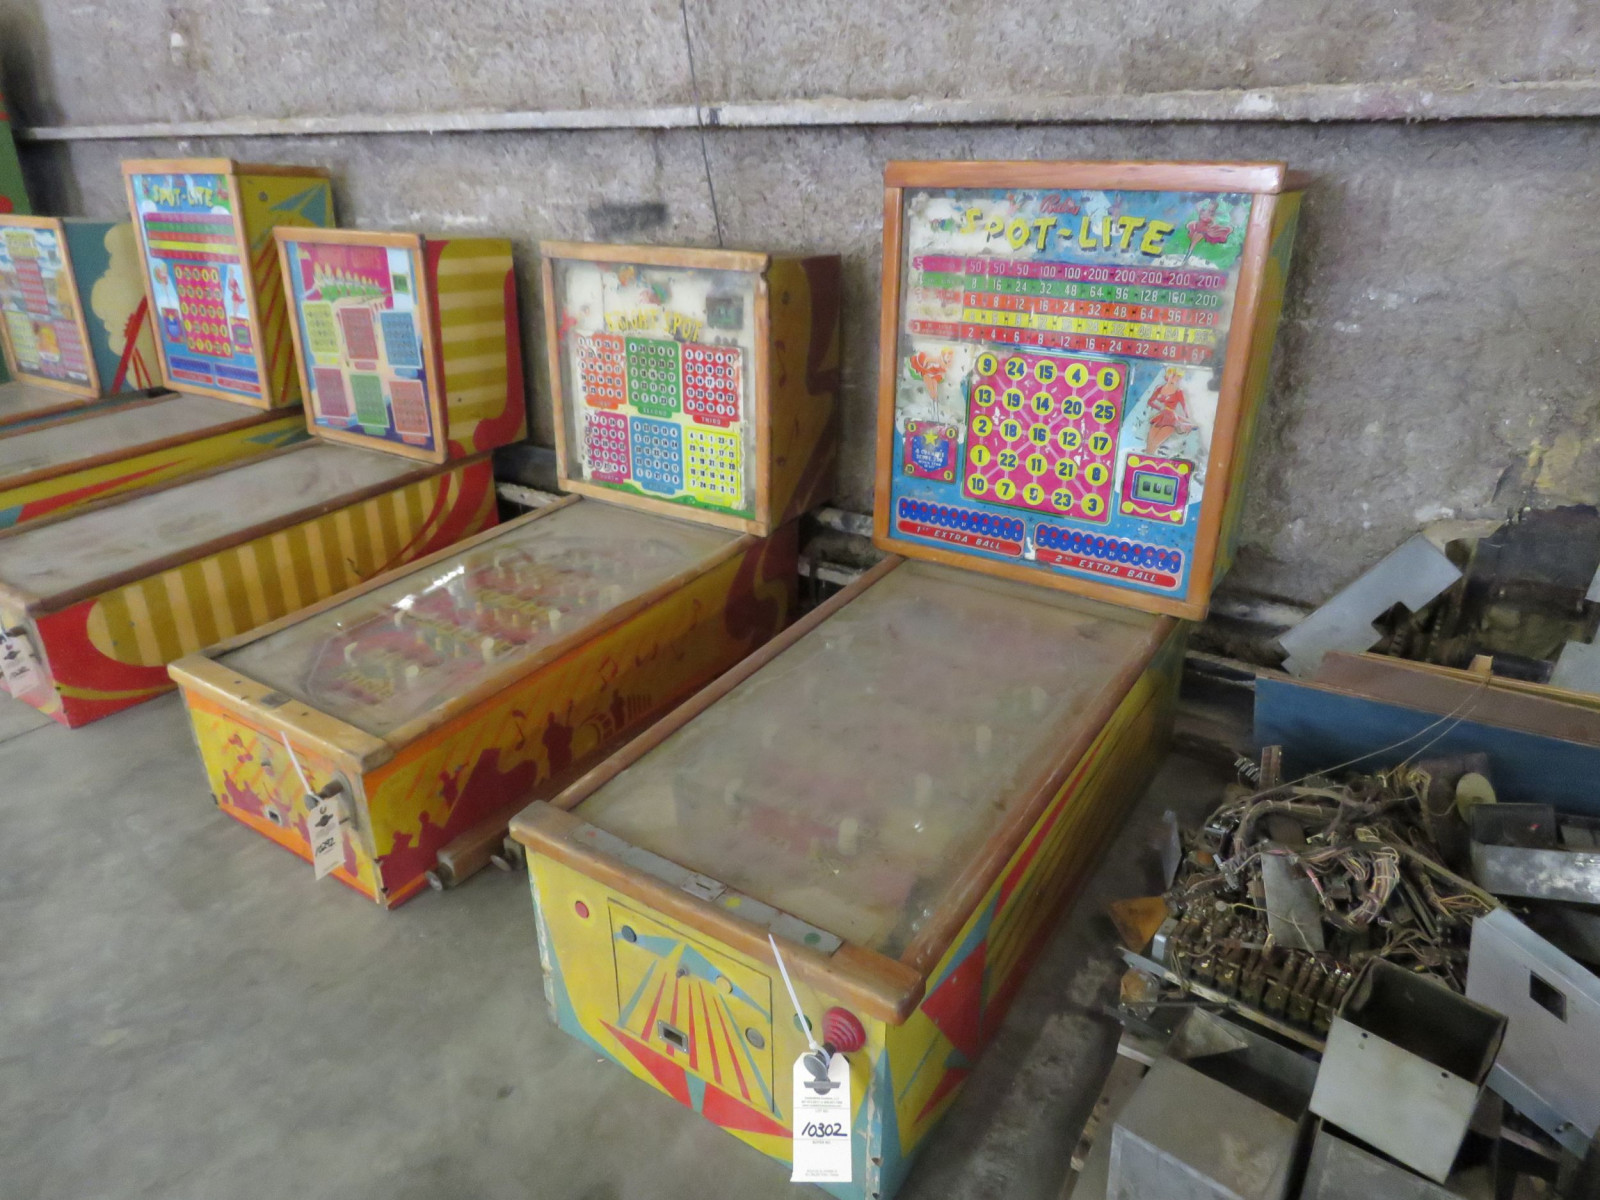 Vintage Bally Spot Light Pinball Machine - Image 1